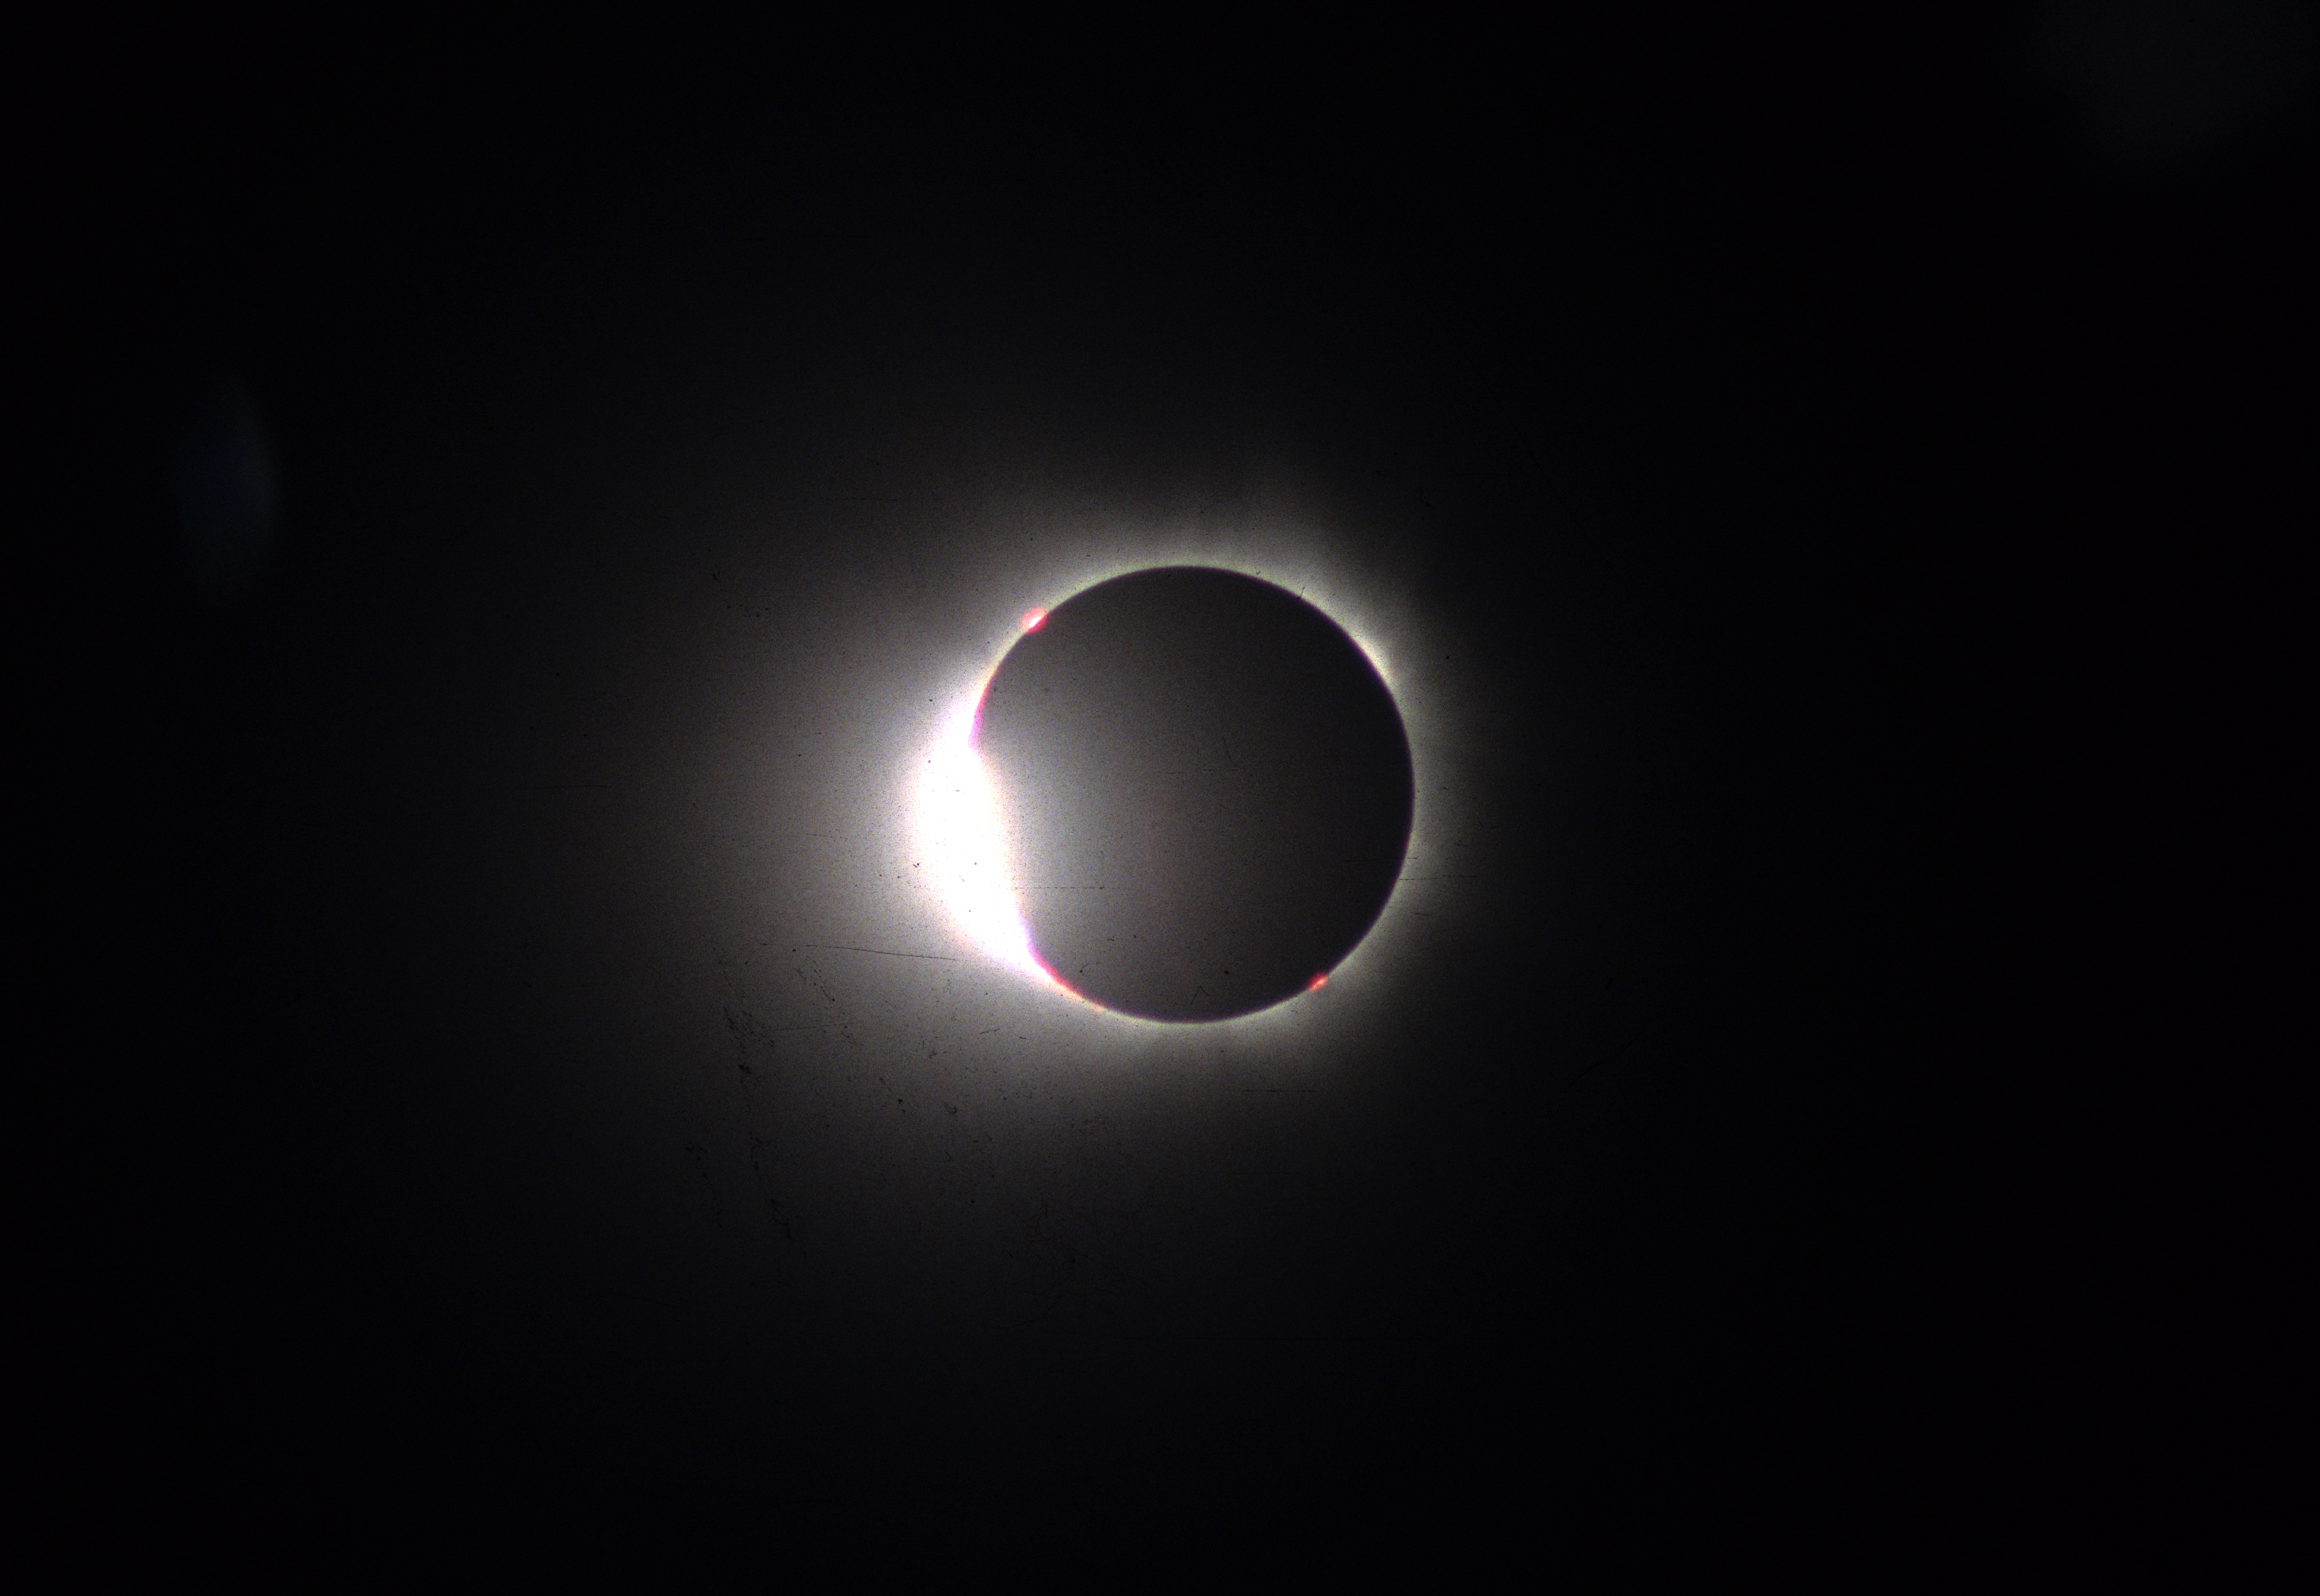 Solar eclipse 2017 article khan academy figure 6 diamond ring effect image from wikimedia commons cc by 20 pooptronica Image collections